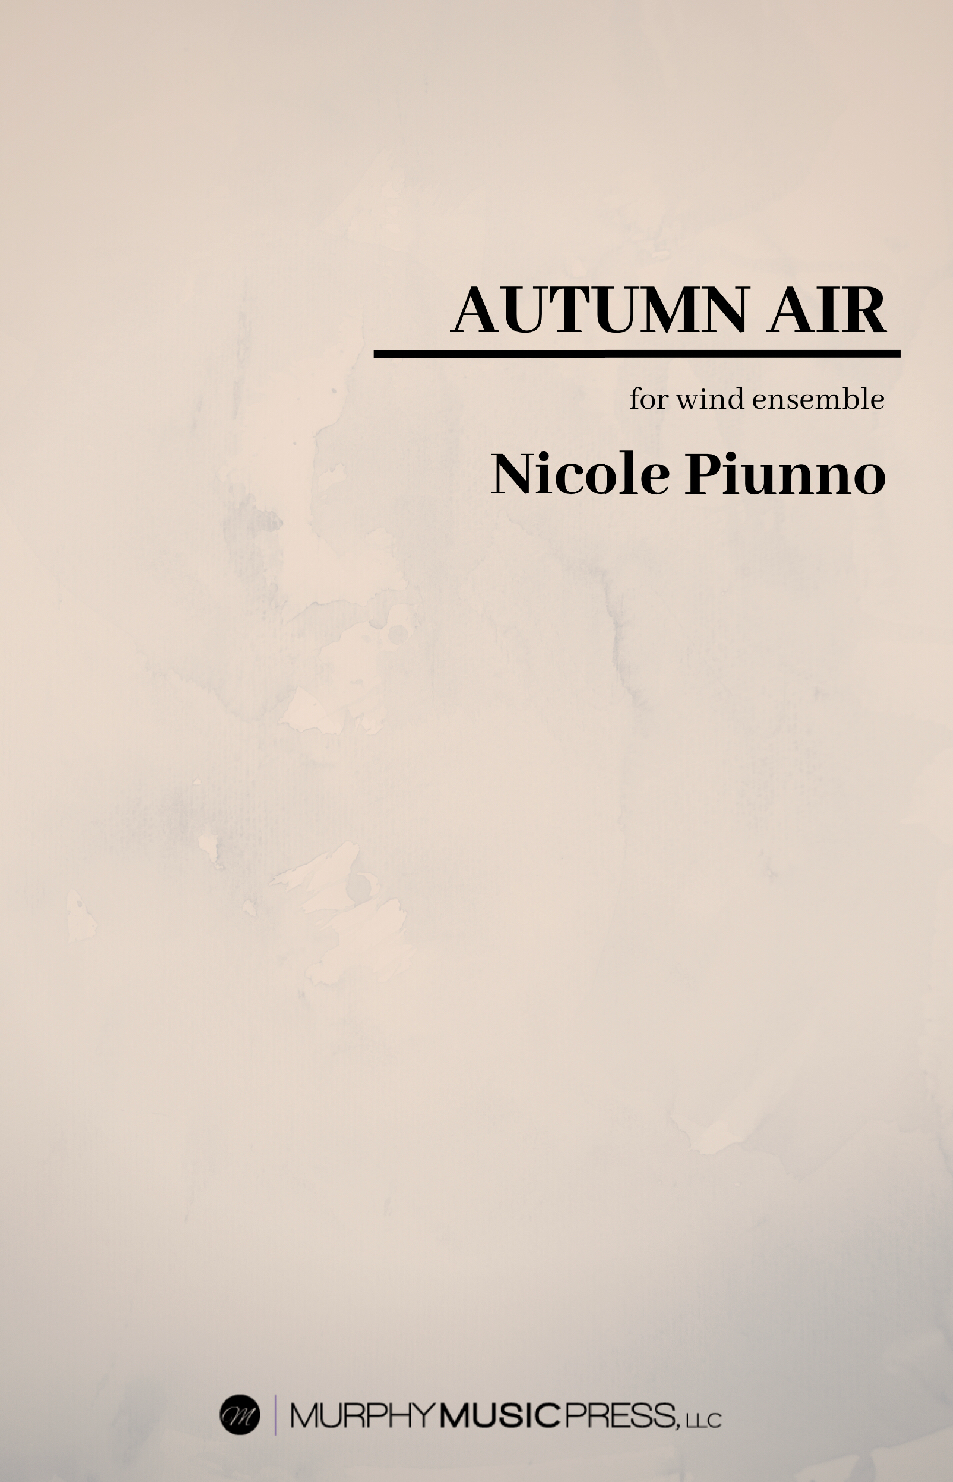 Autumn Air by Nicole Piunno